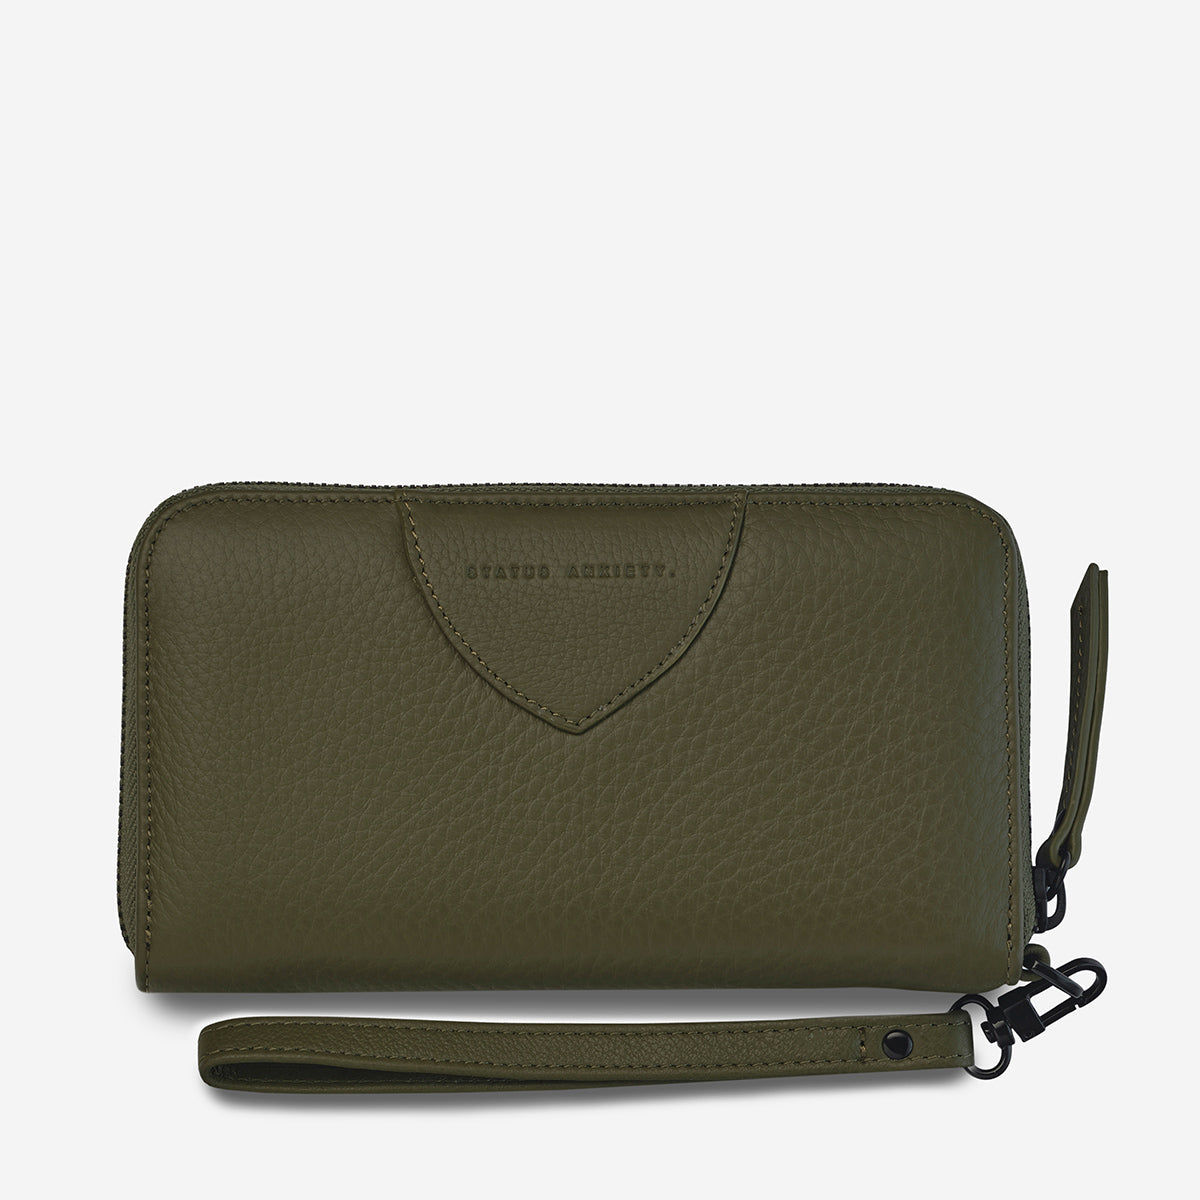 Status Anxiety Moving On Women's Leather Wallet - Khaki